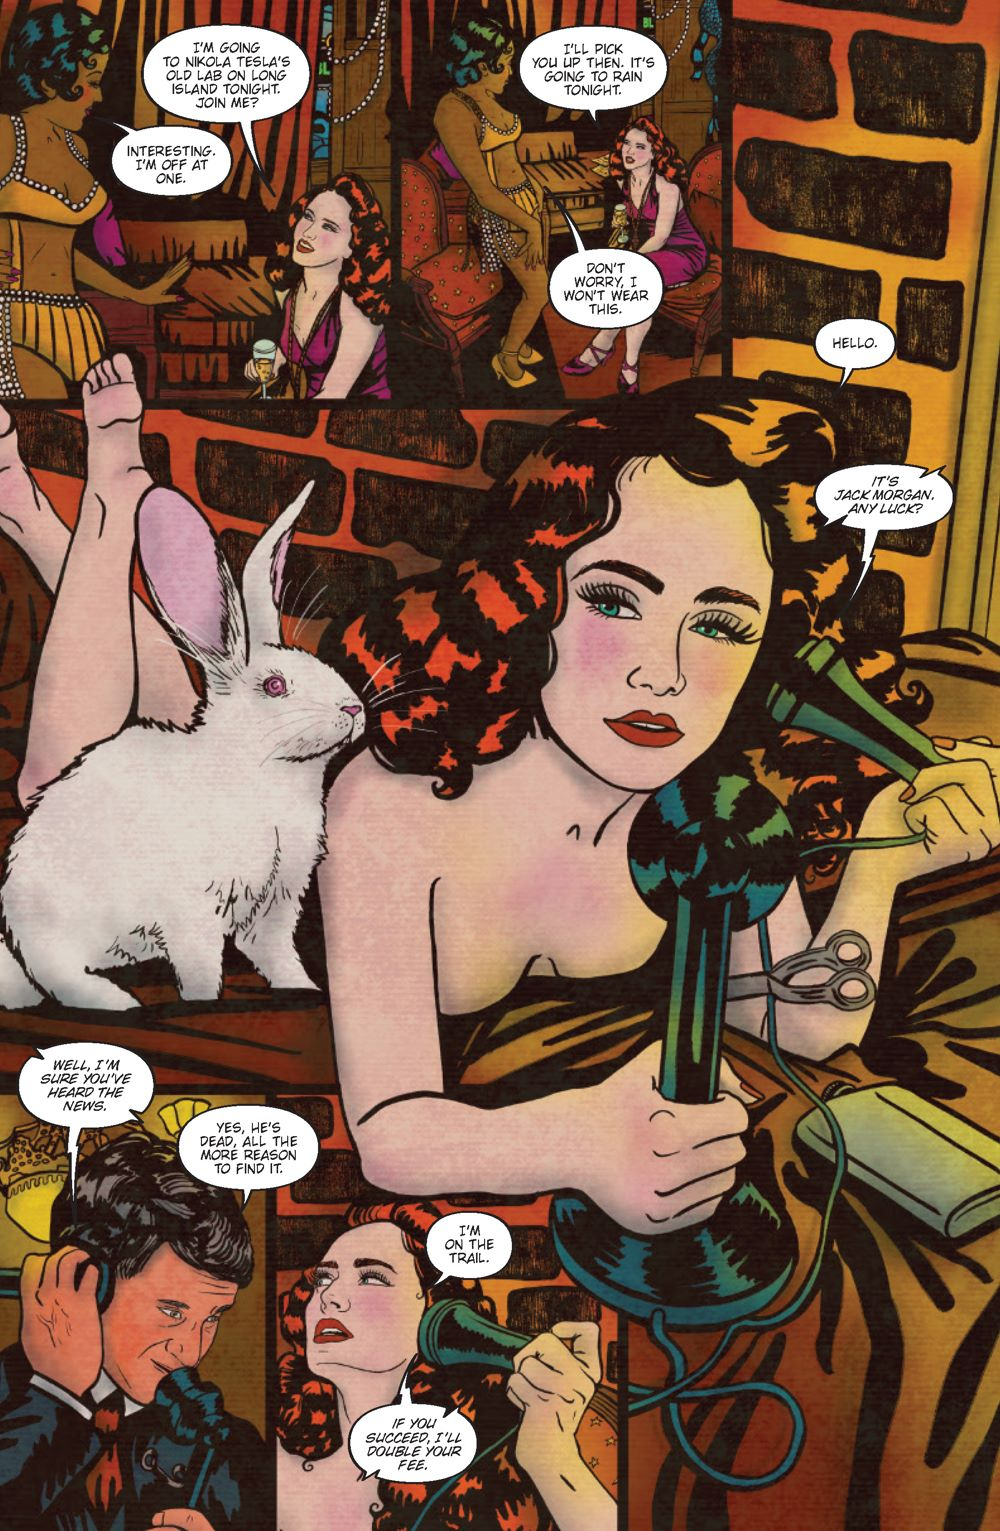 Pages-from-Binder3_Page_4 ComicList Previews: MINKY WOODCOCK THE GIRL WHO ELECTRIFIED TESLA #3